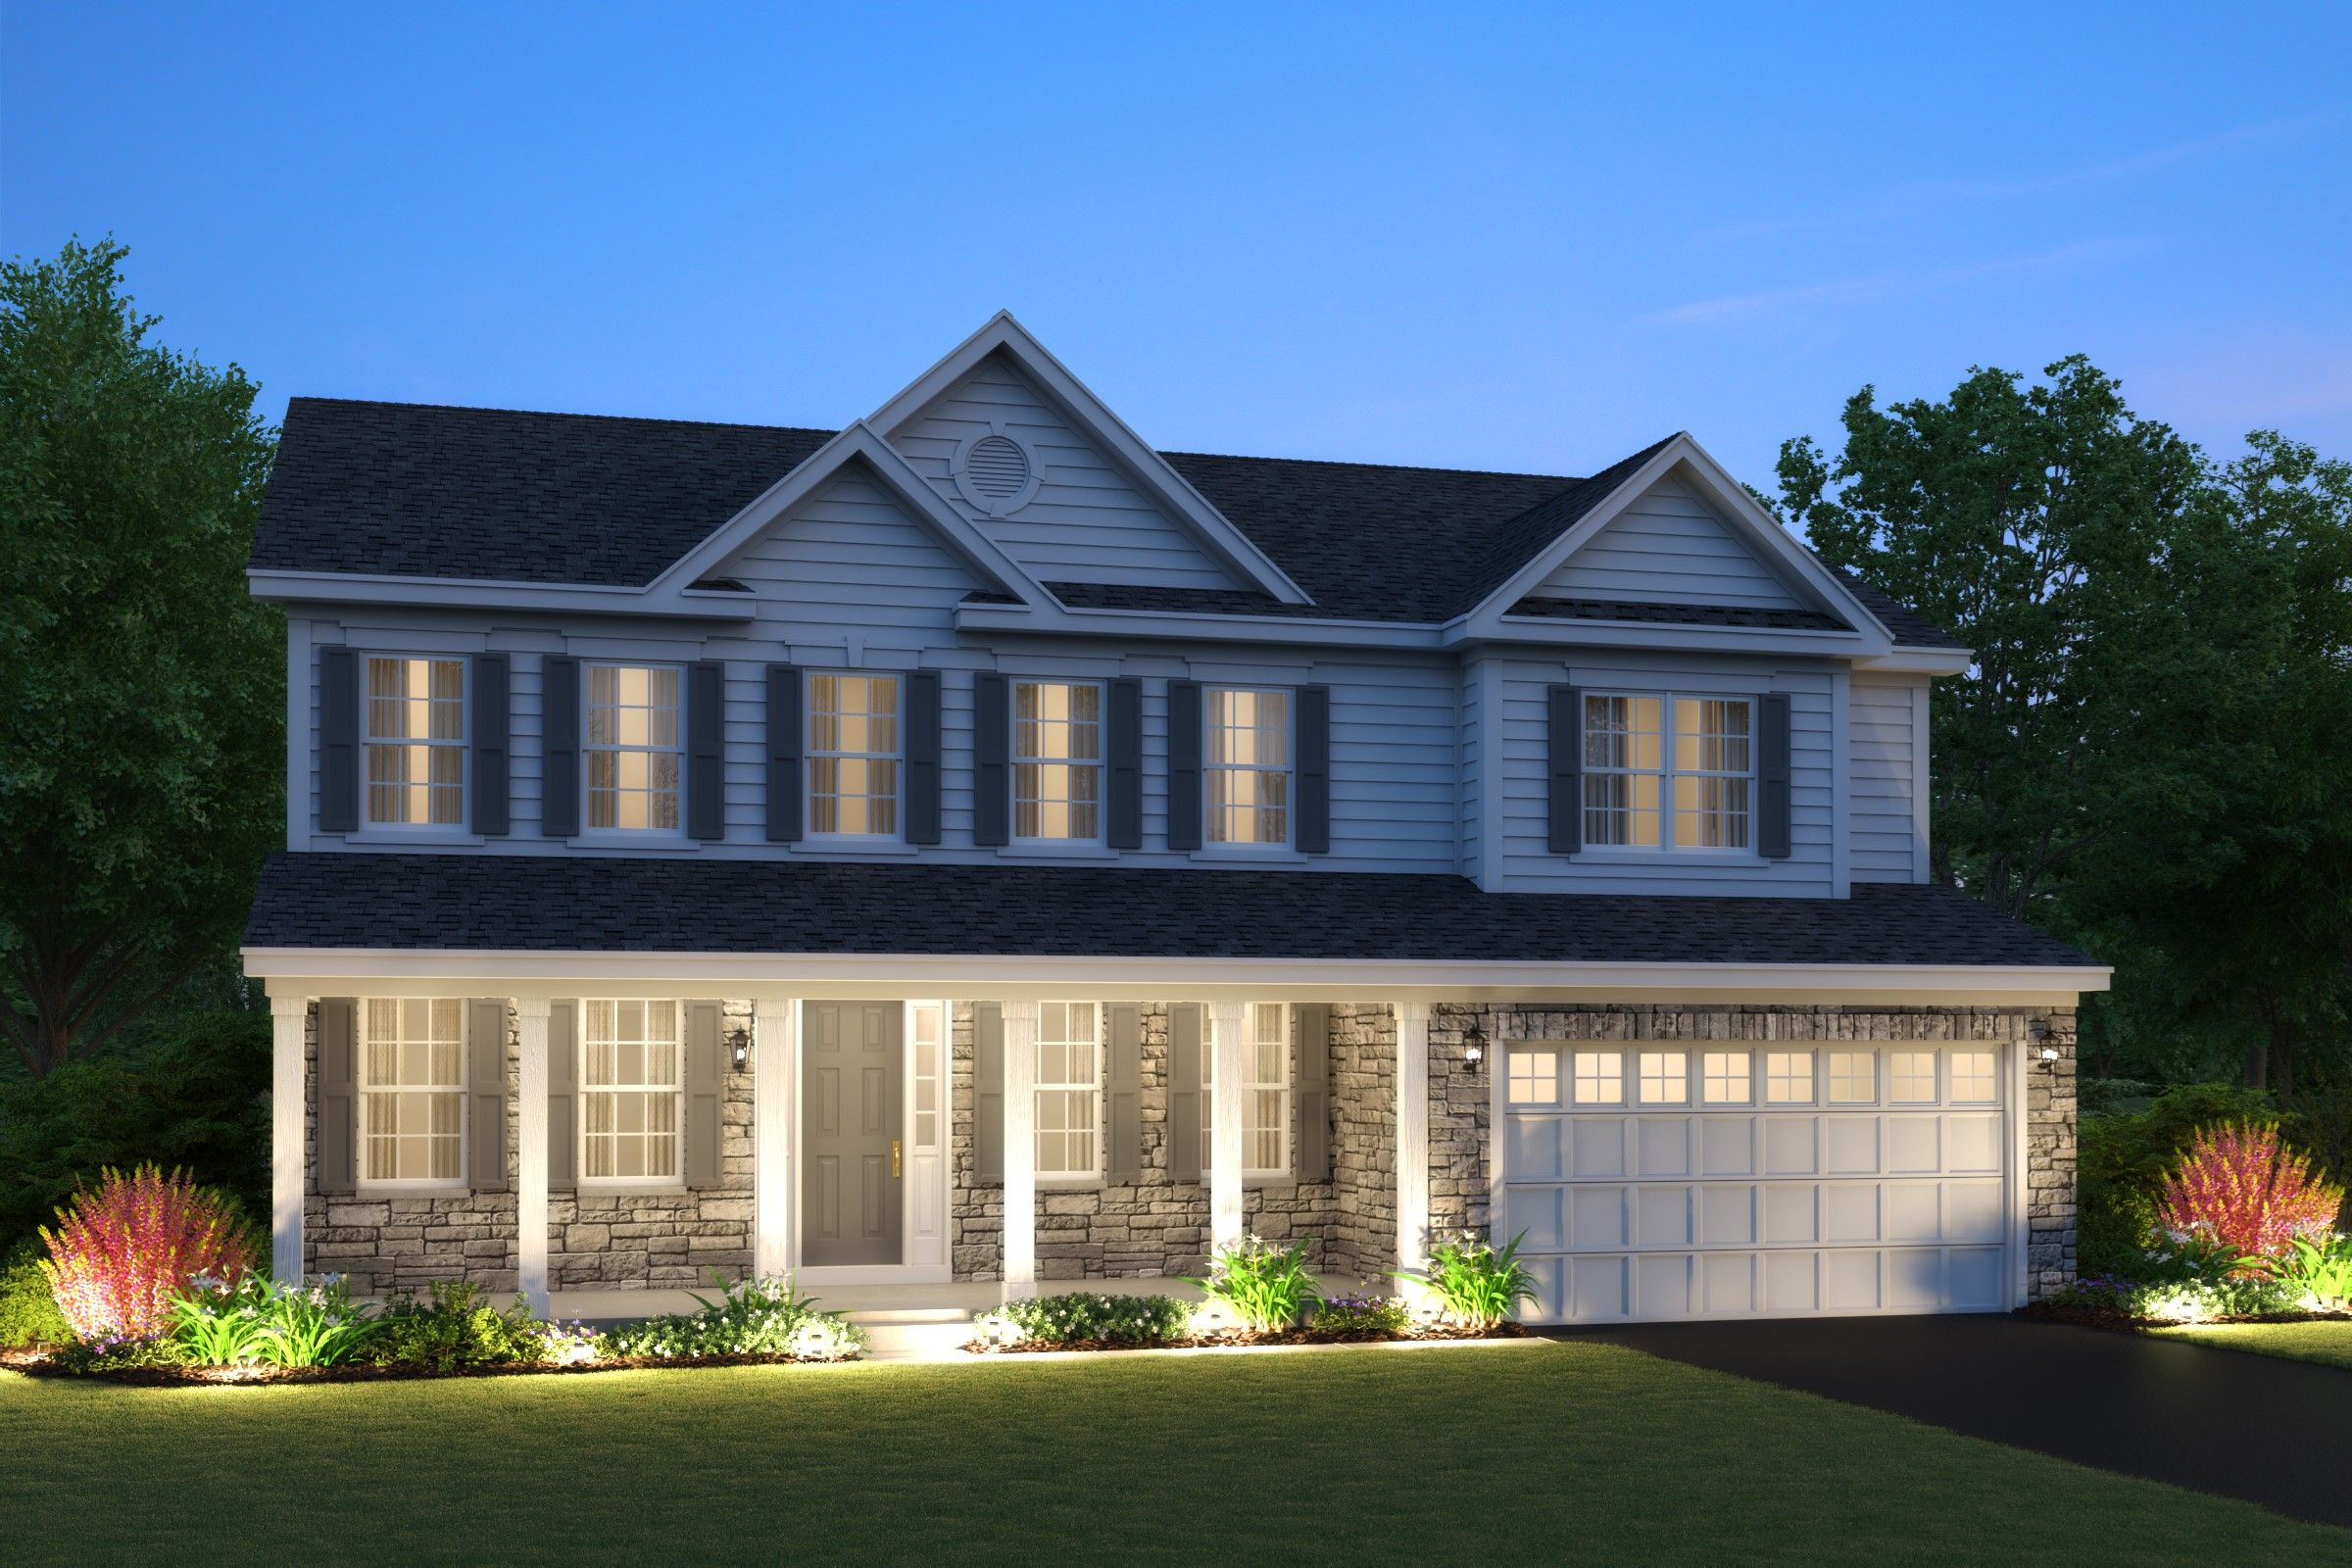 Single Family for Active at North Pointe Estates - Dover 1201 North Pointe Drive Libertyville, Illinois 60048 United States